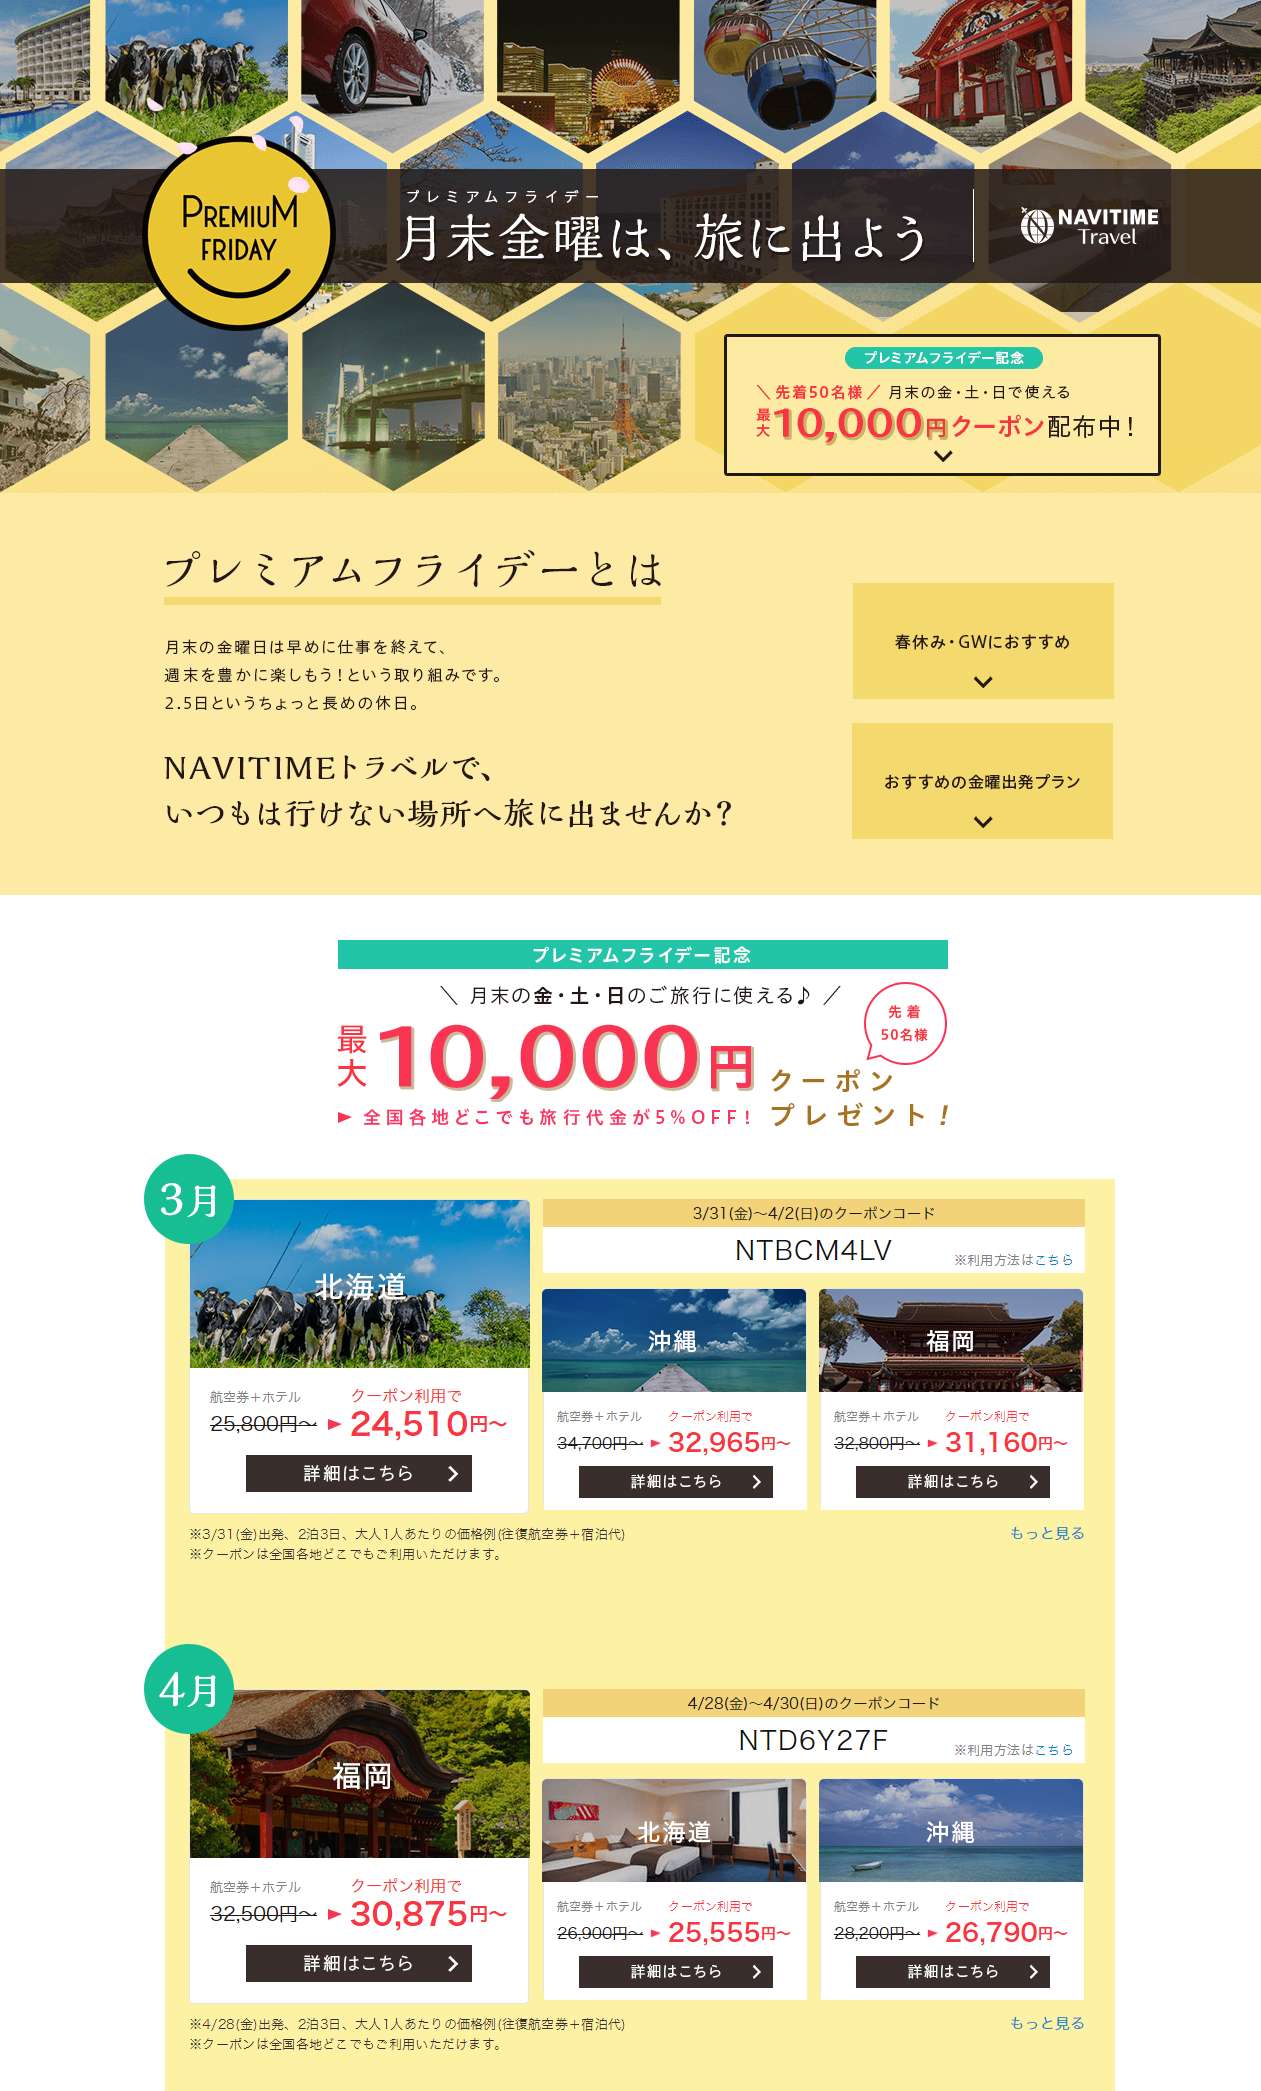 http://corporate.navitime.co.jp/topics/3f5fefbd12faf7075565099ce036ba2ea186071e.png